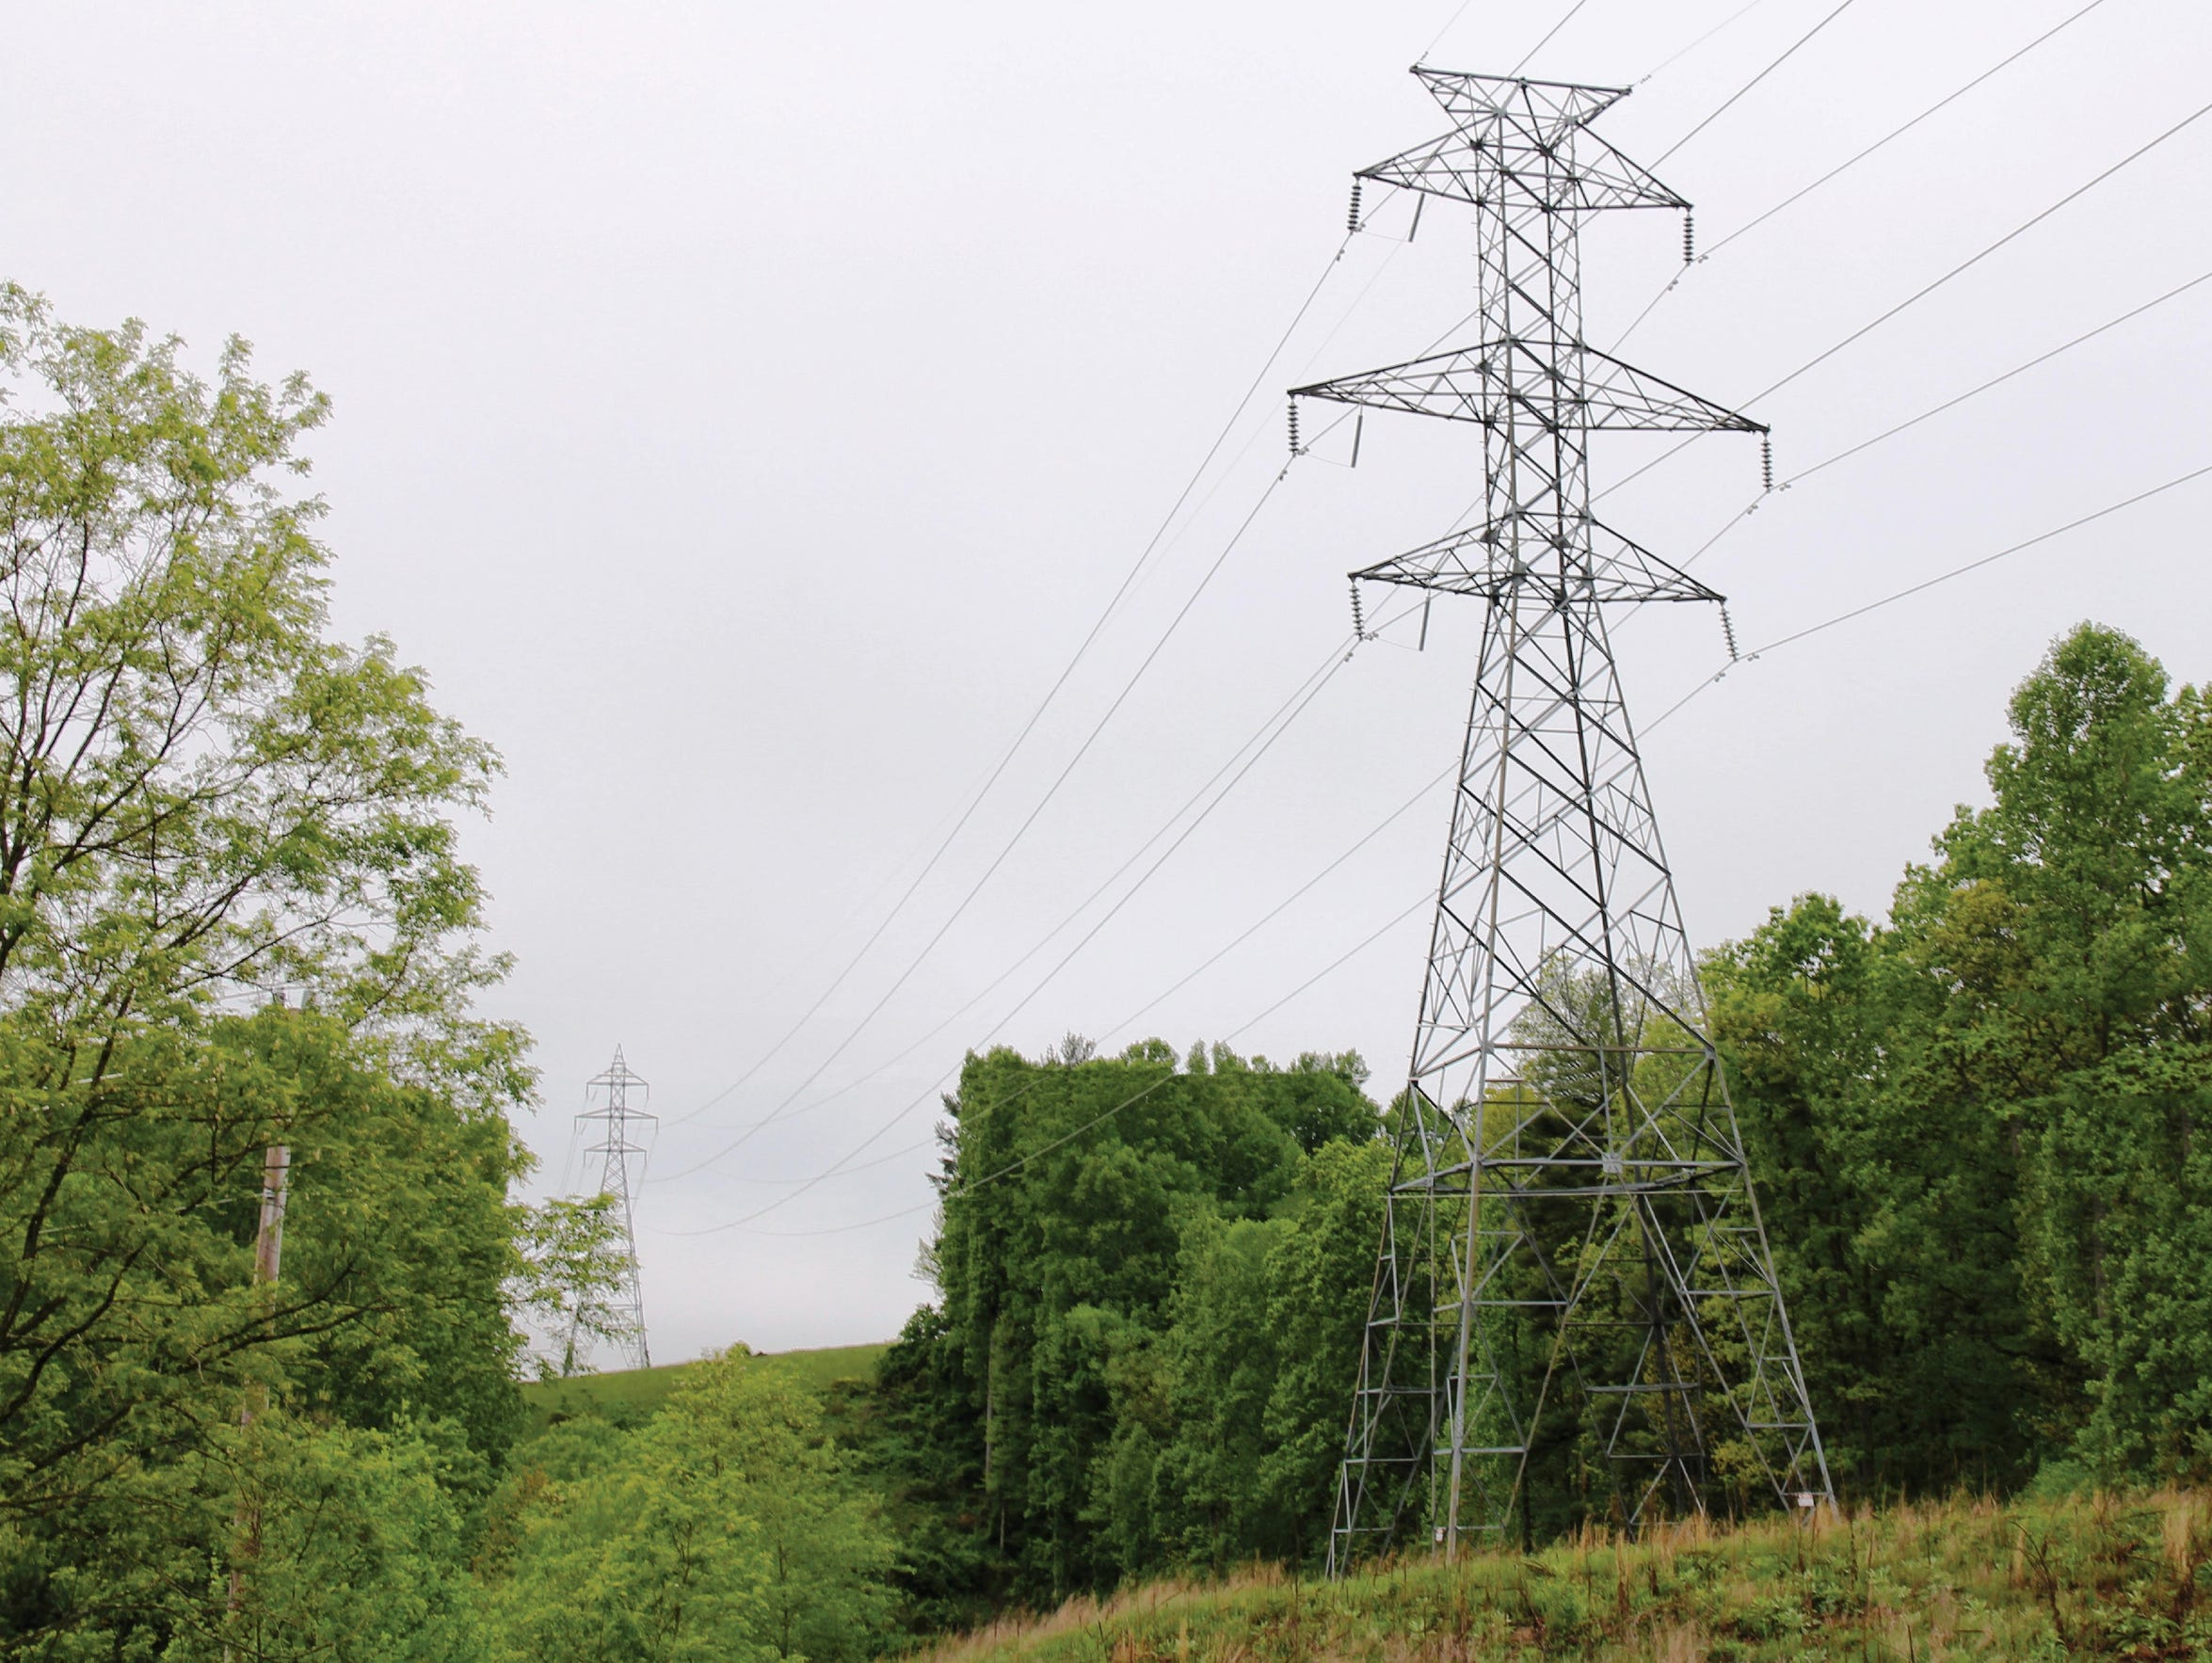 The photograph depicts a typical 230 kV double circuit